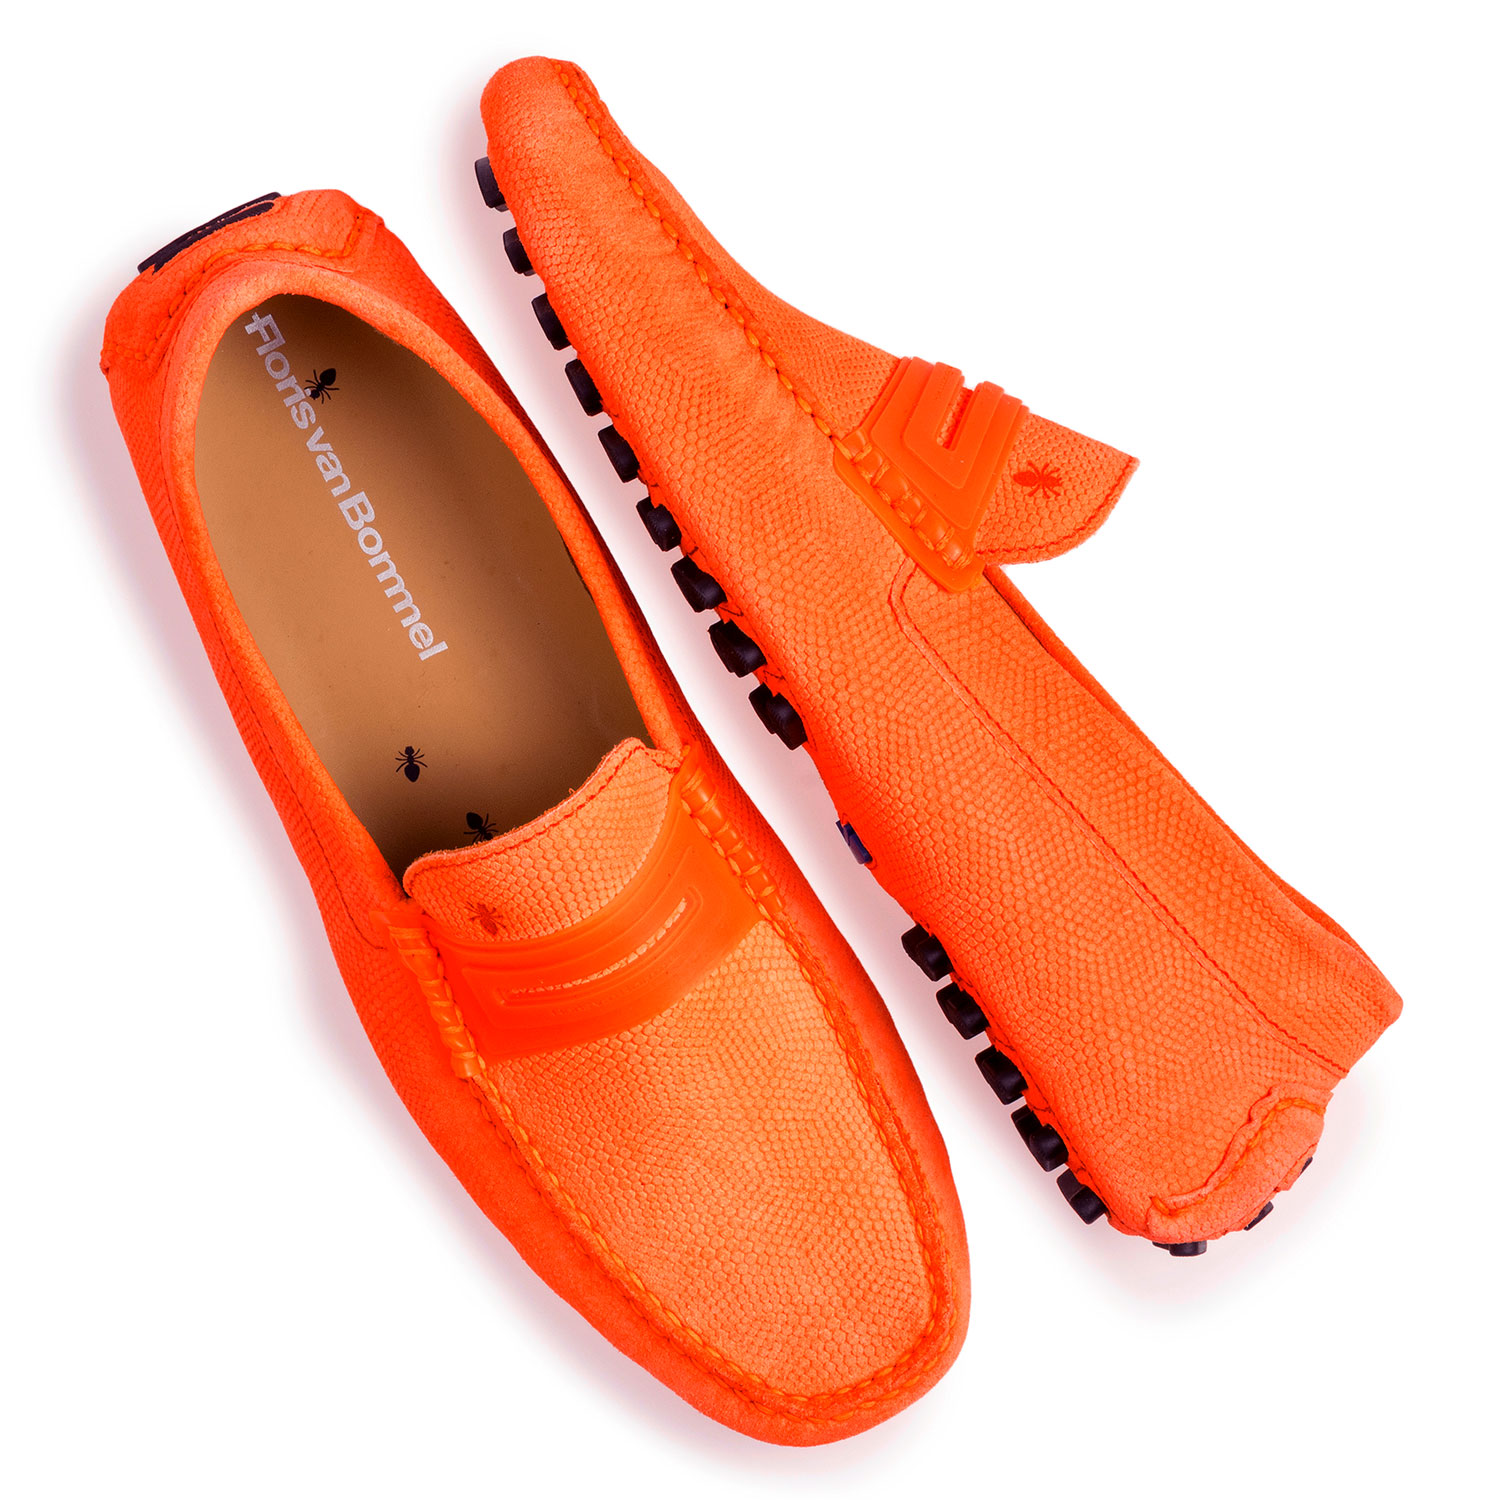 15215/02 - Premium fluorescent orange leather moccasin